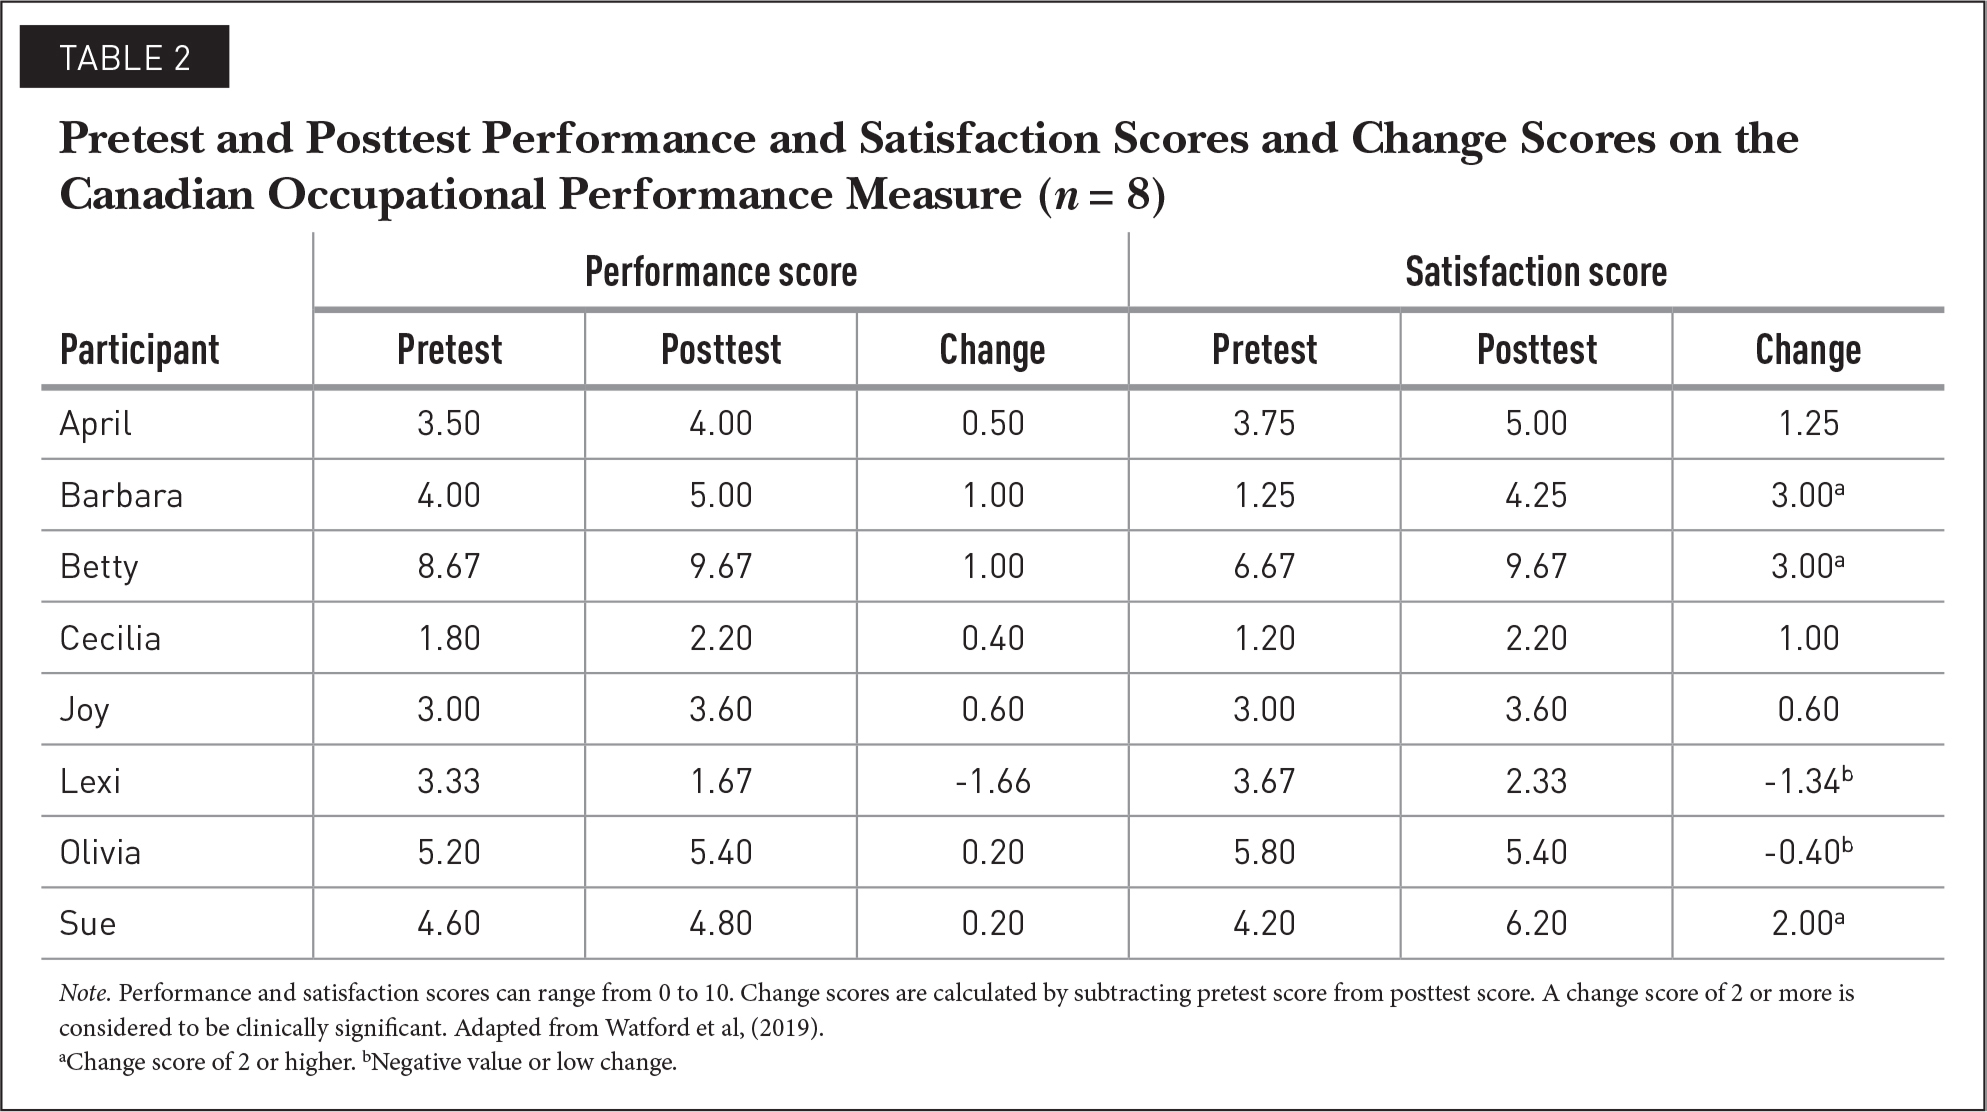 Pretest and Posttest Performance and Satisfaction Scores and Change Scores on the Canadian Occupational Performance Measure (n = 8)